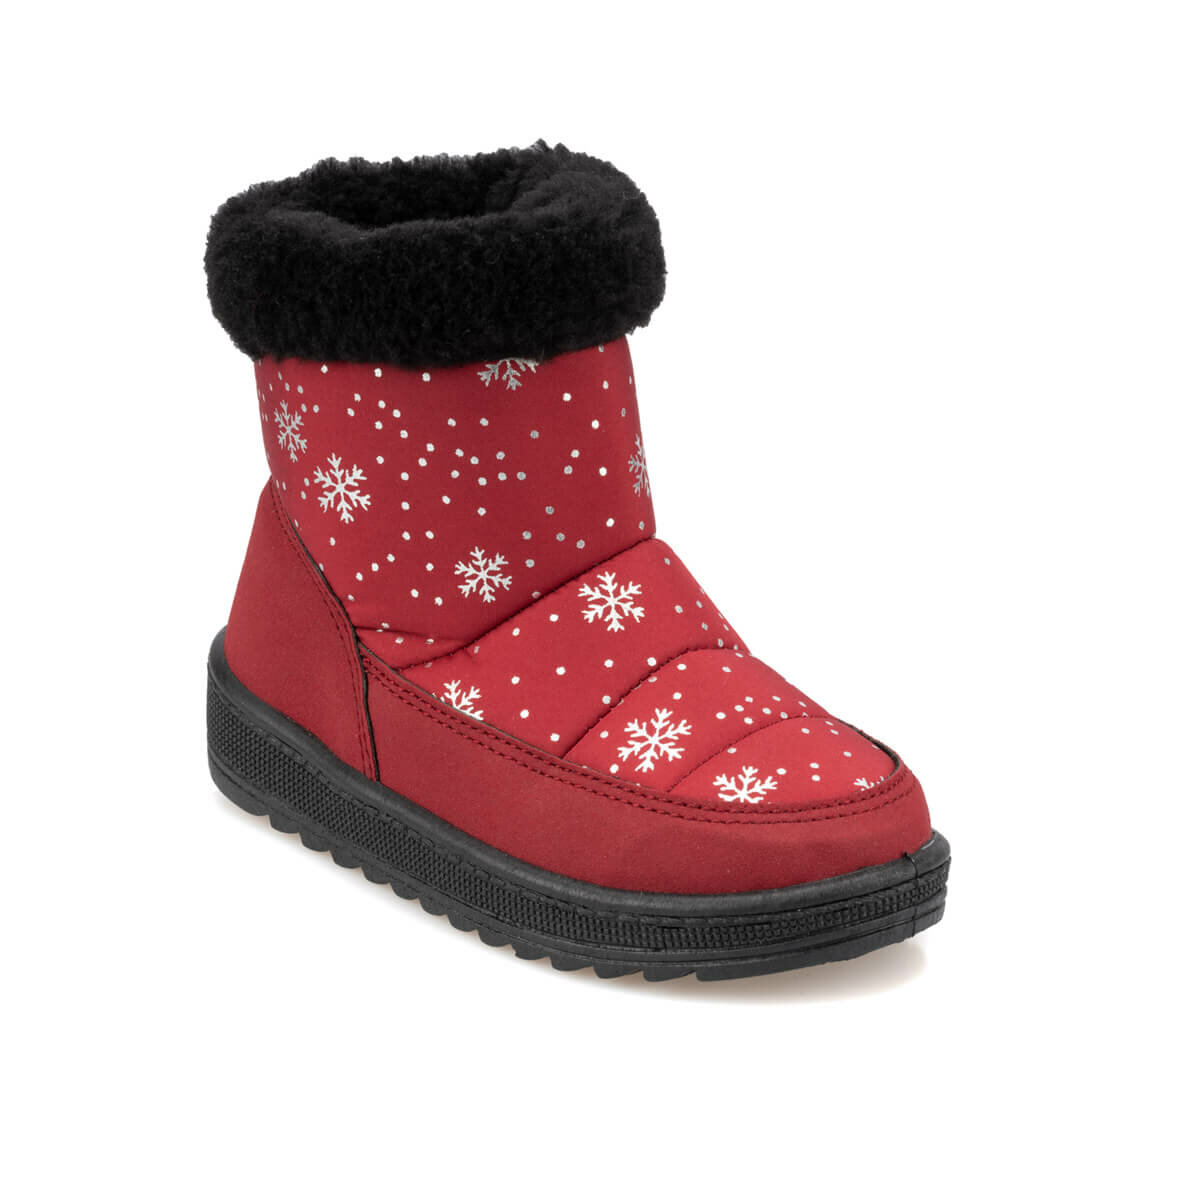 FLO 92.511804.P Burgundy Female Child Snow Boat Polaris